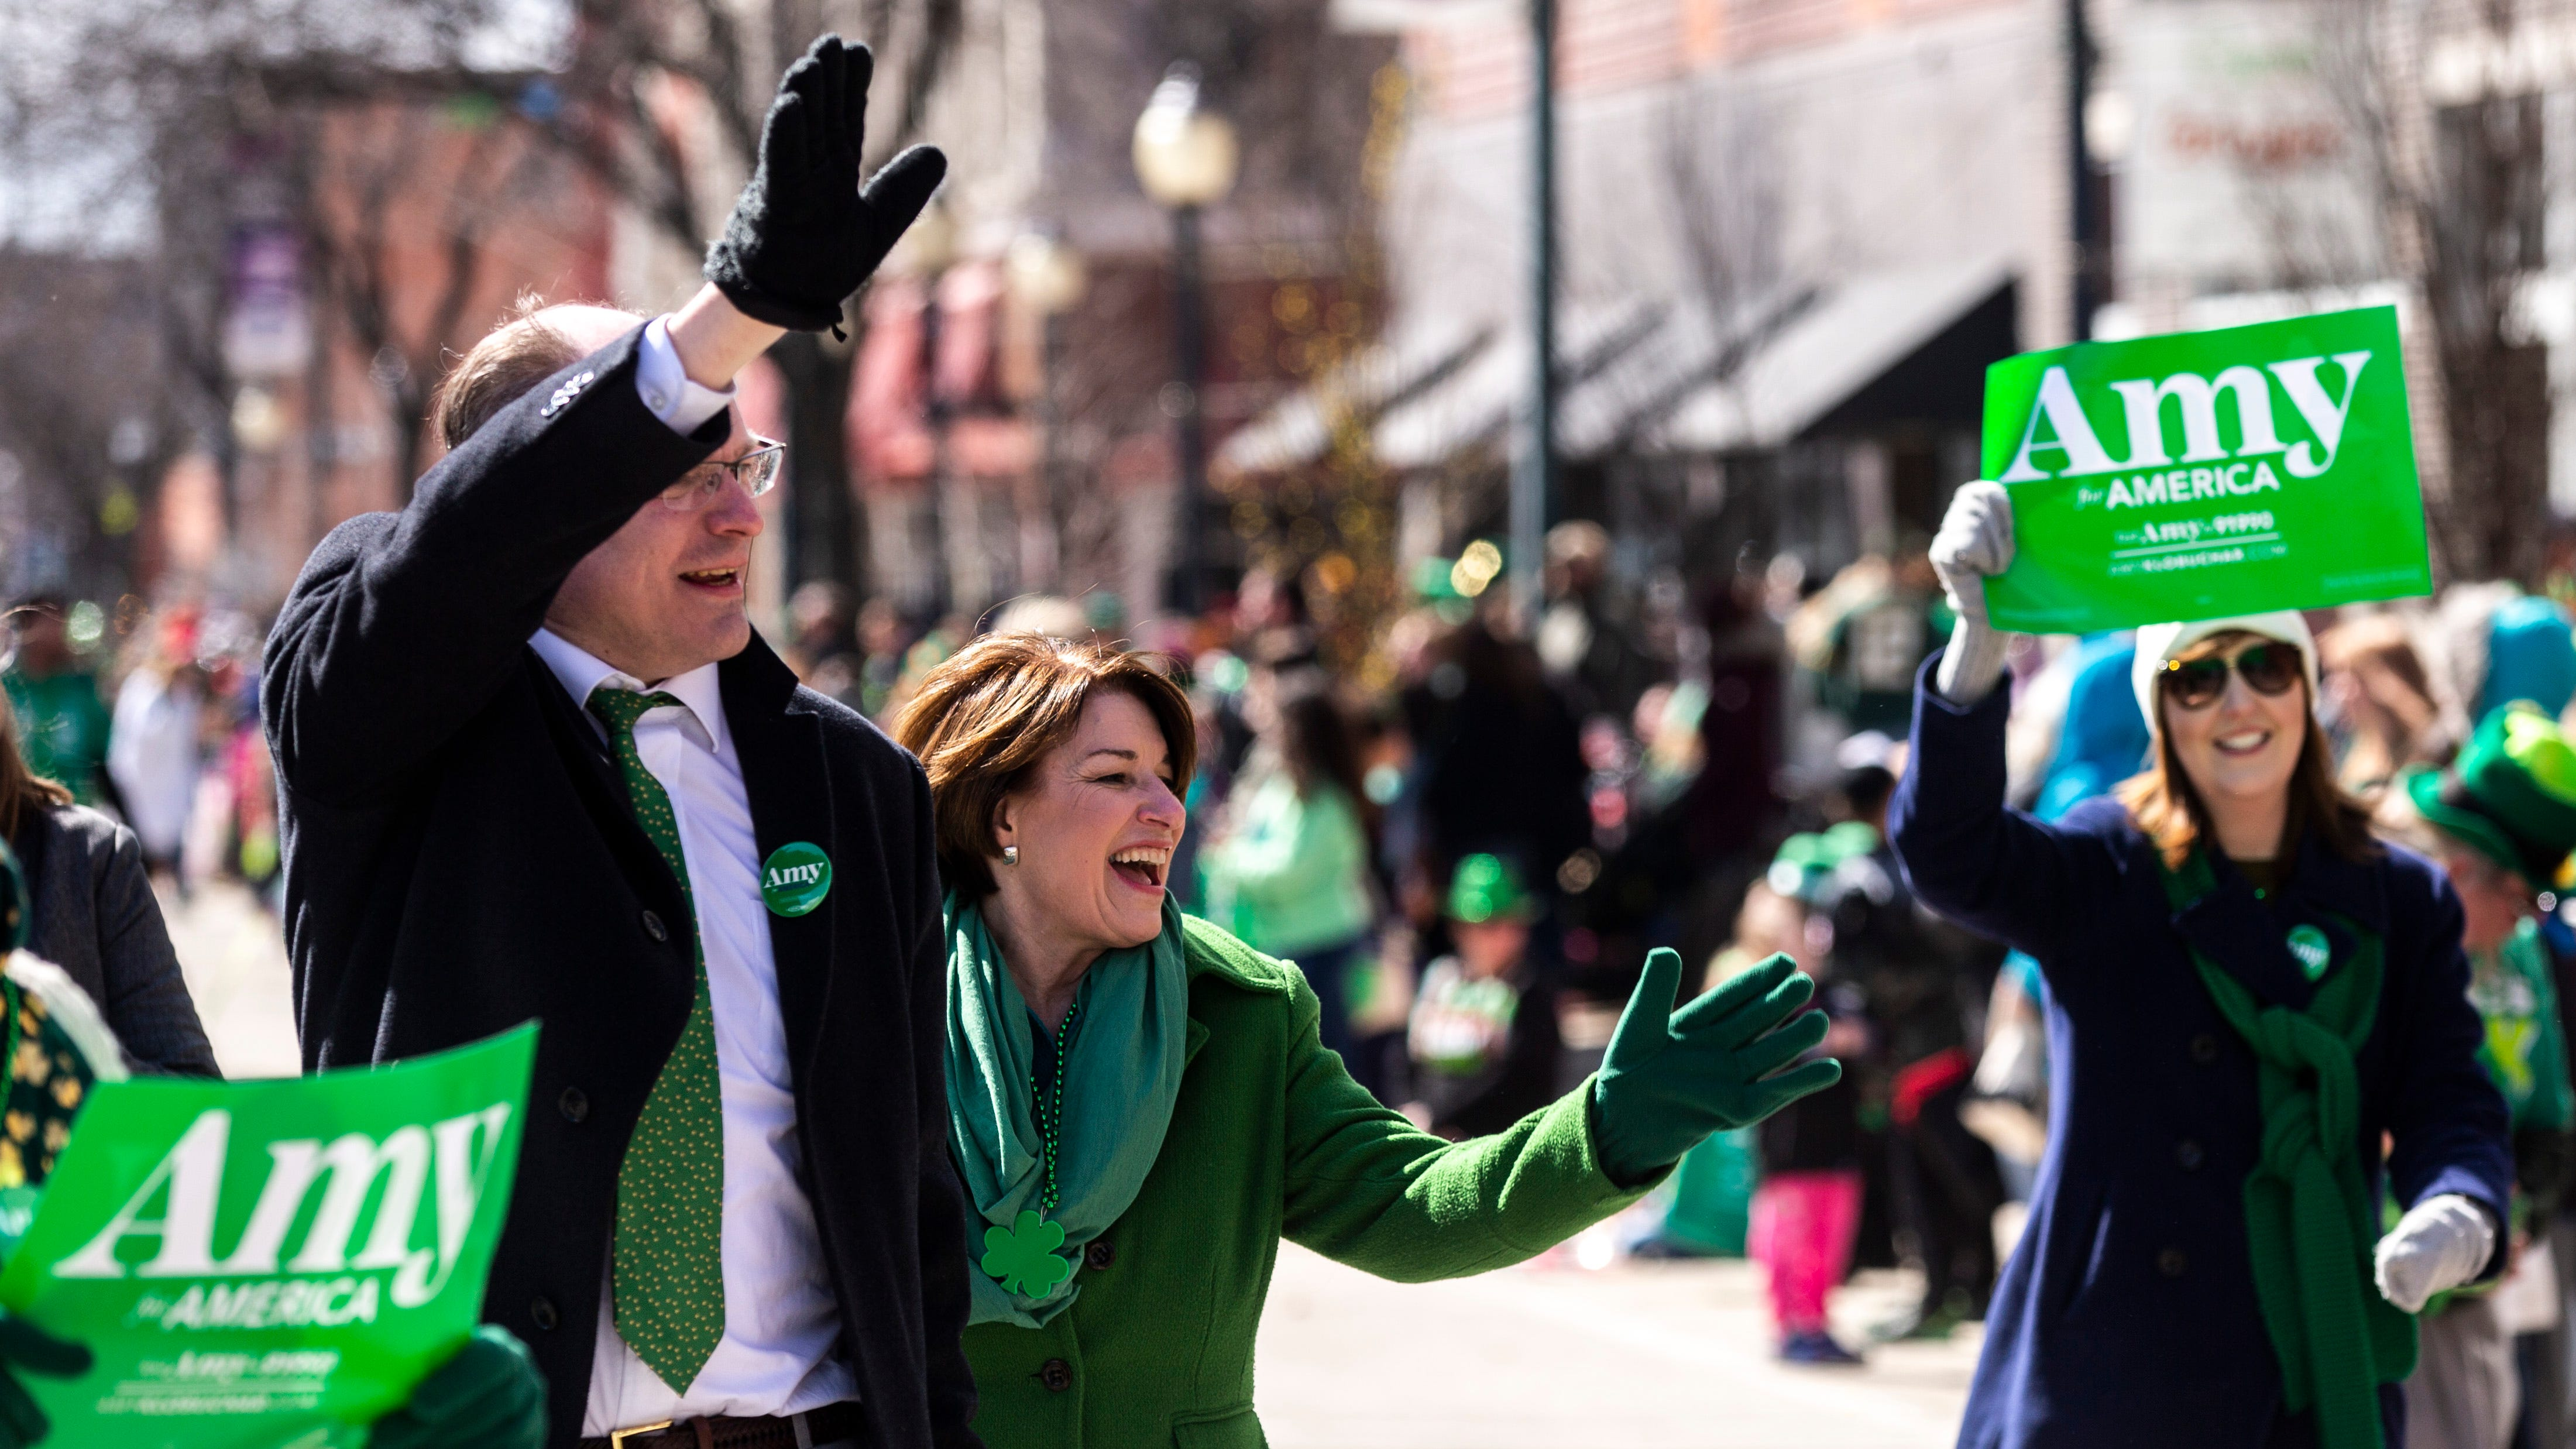 Sometimes running for president means marching in a parade — and that's just what Amy Klobuchar did in Iowa on Sunday